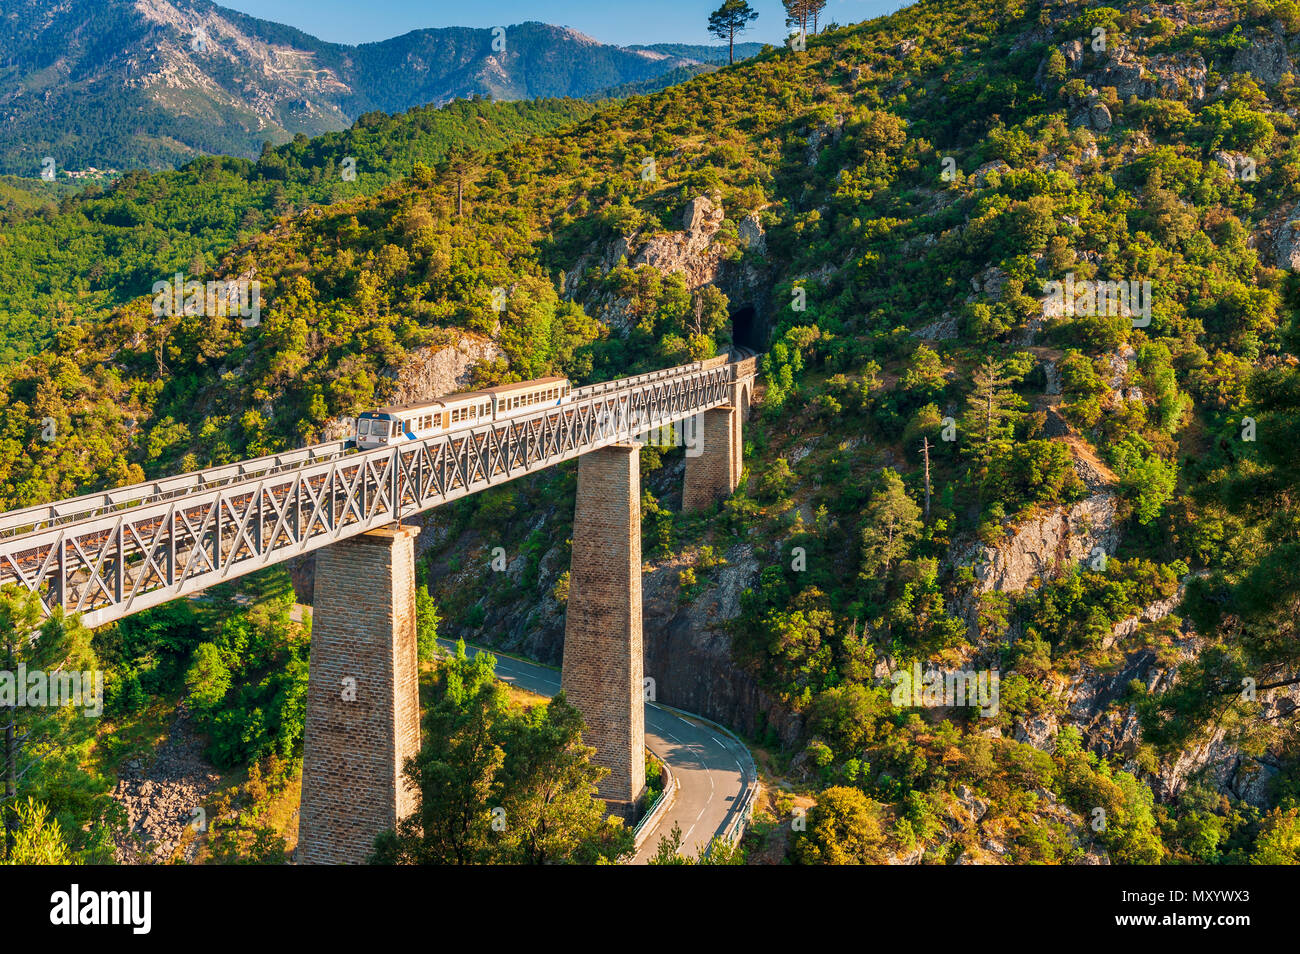 Train crossing Gustave Eiffel's Viaduct in Vecchio, Corsica, France - Stock Image